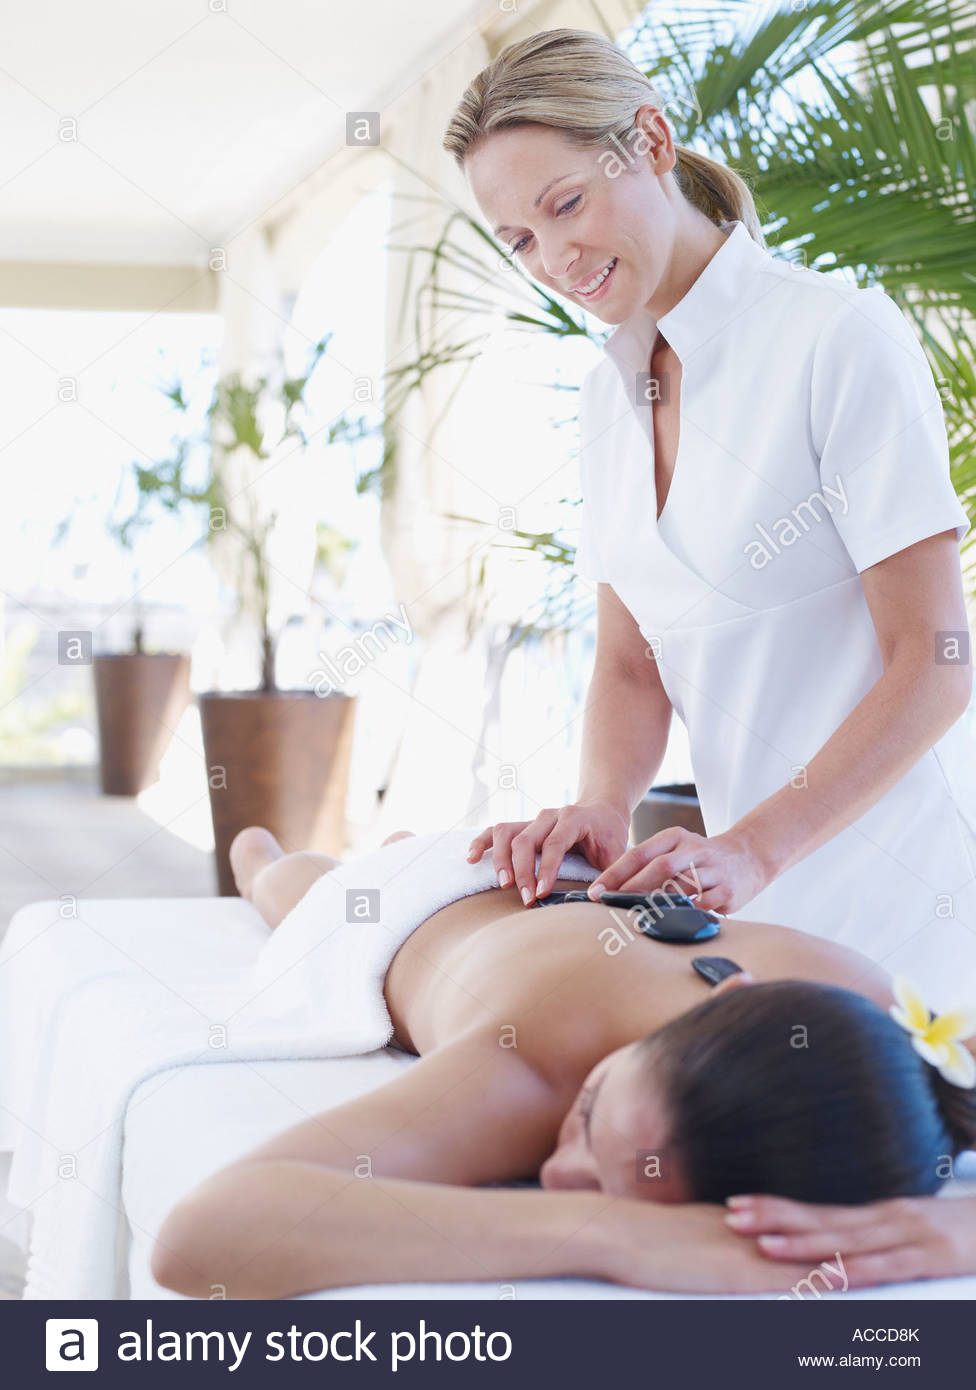 Masseuse placing massage stones on a woman's back - Stock Image